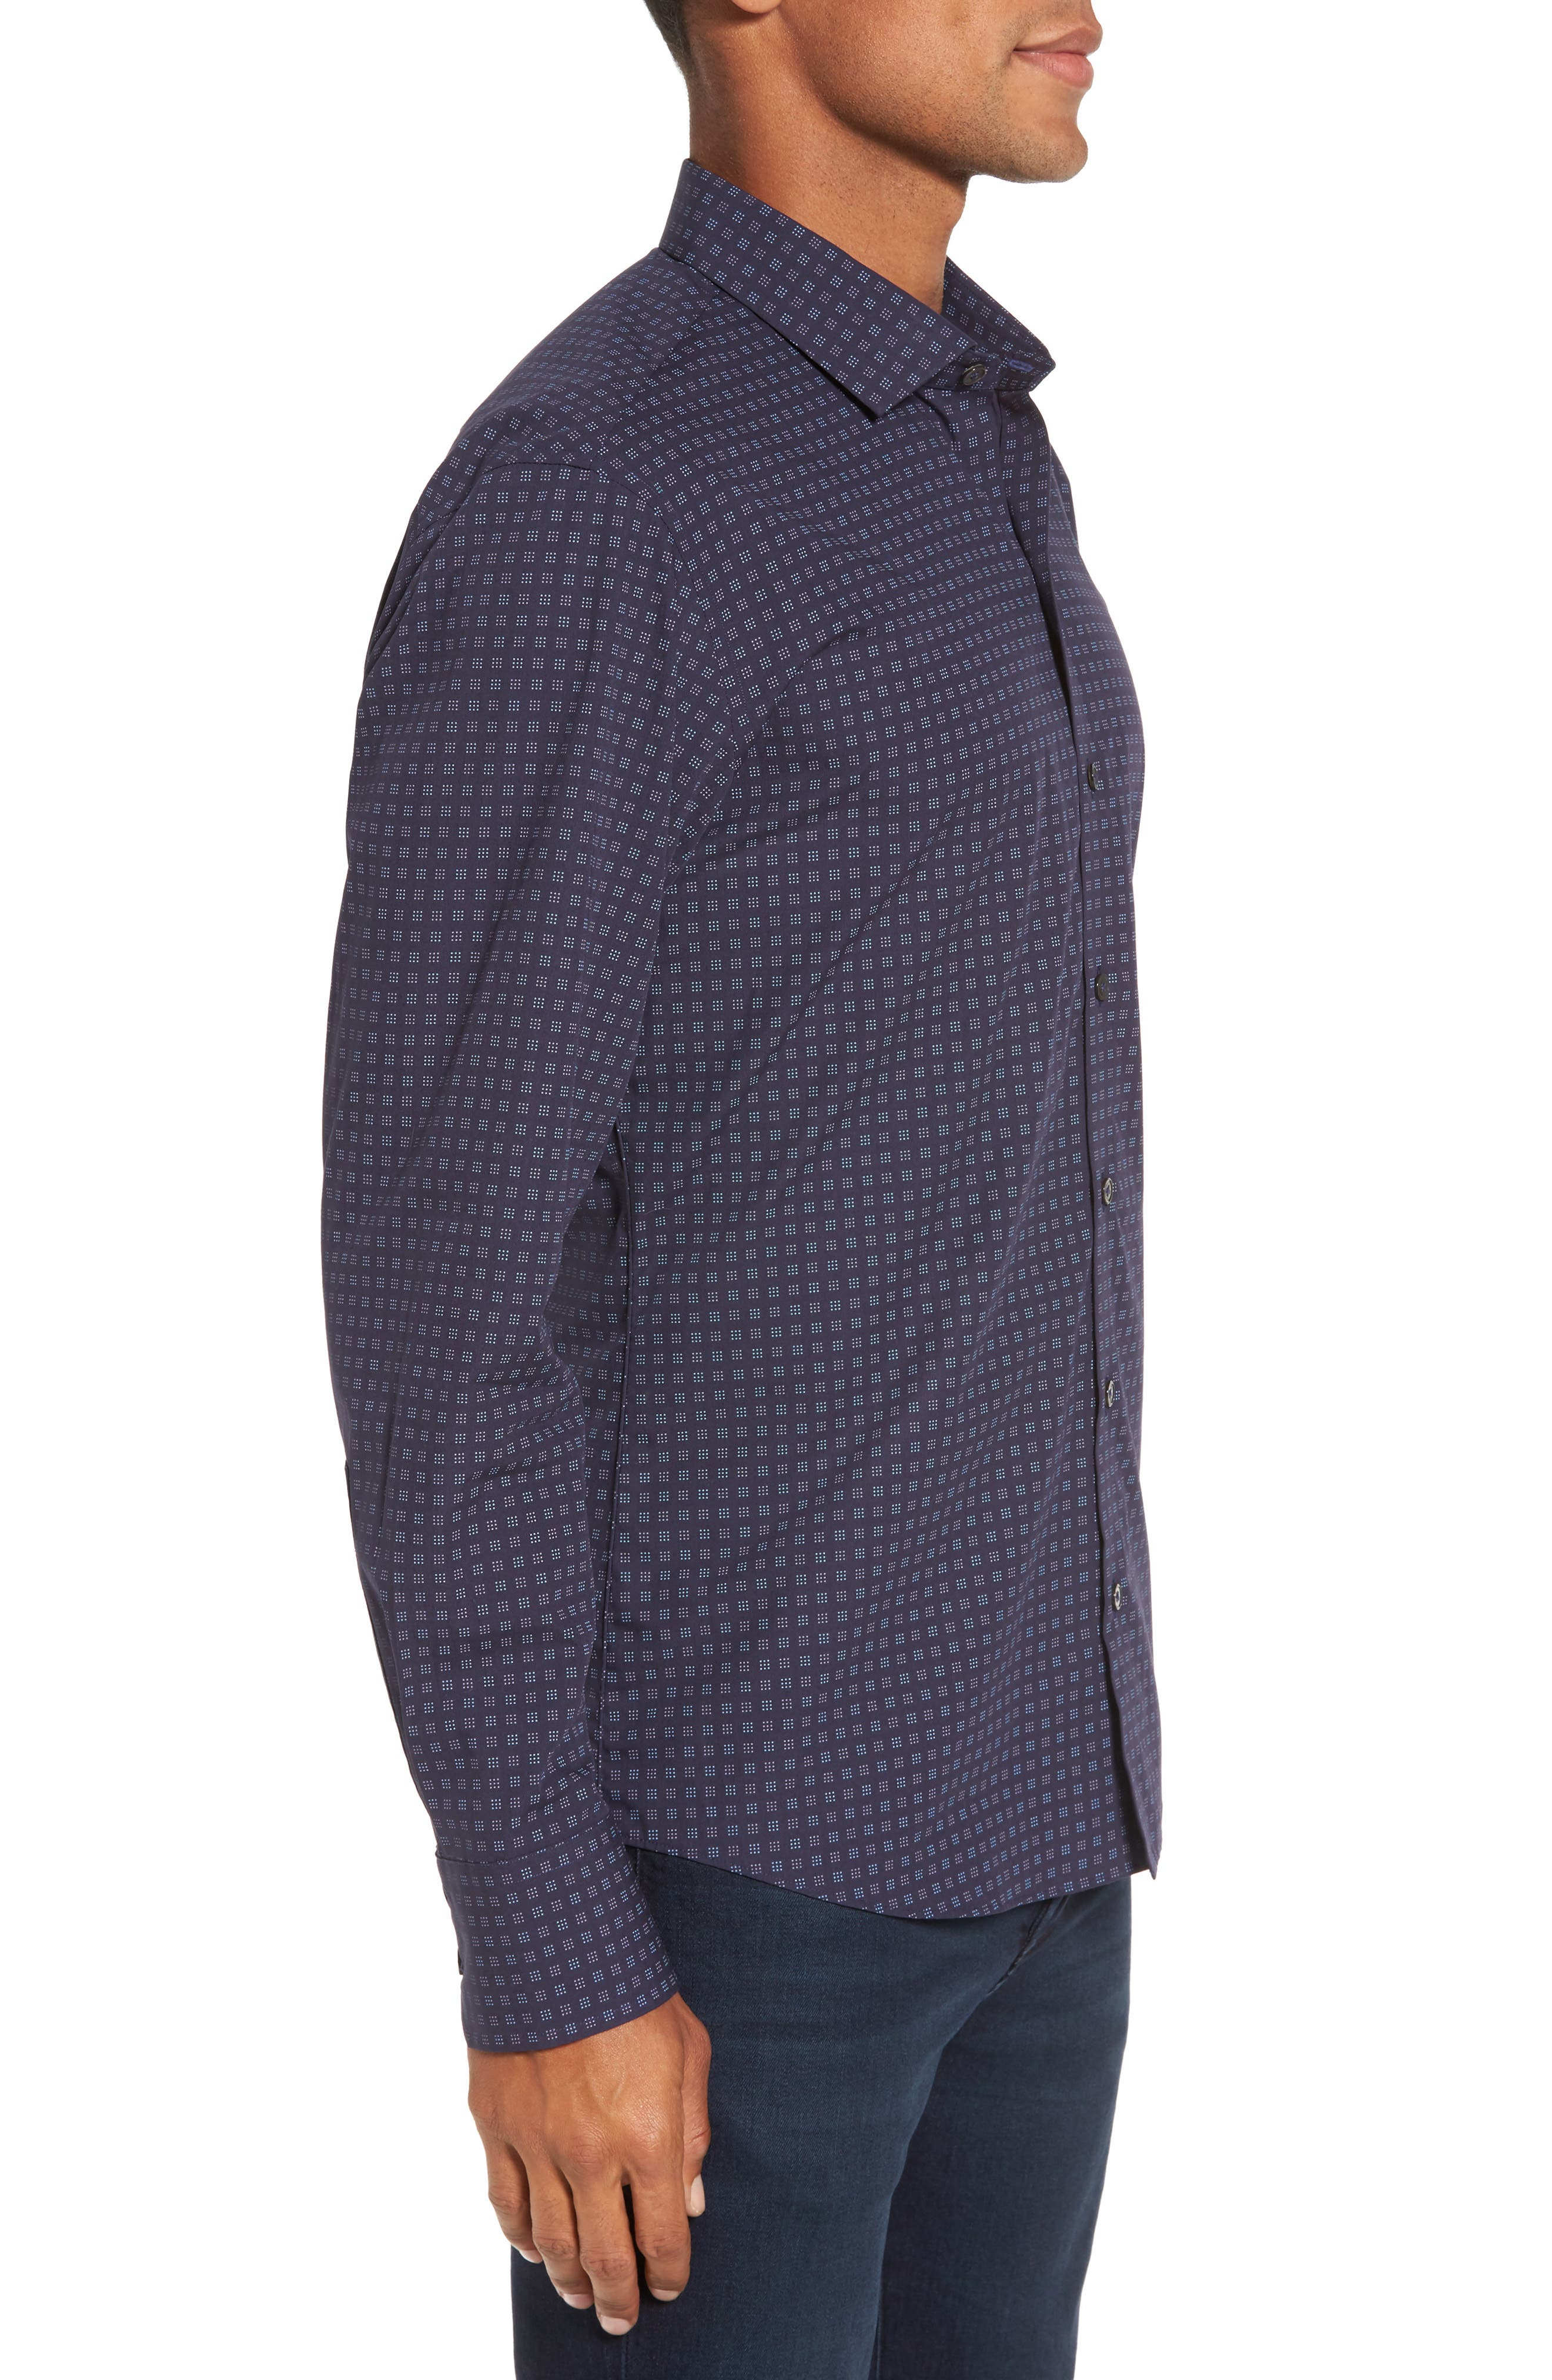 Alternate Image 3  - Zachary Prell Maison Slim Fit Print Sport Shirt